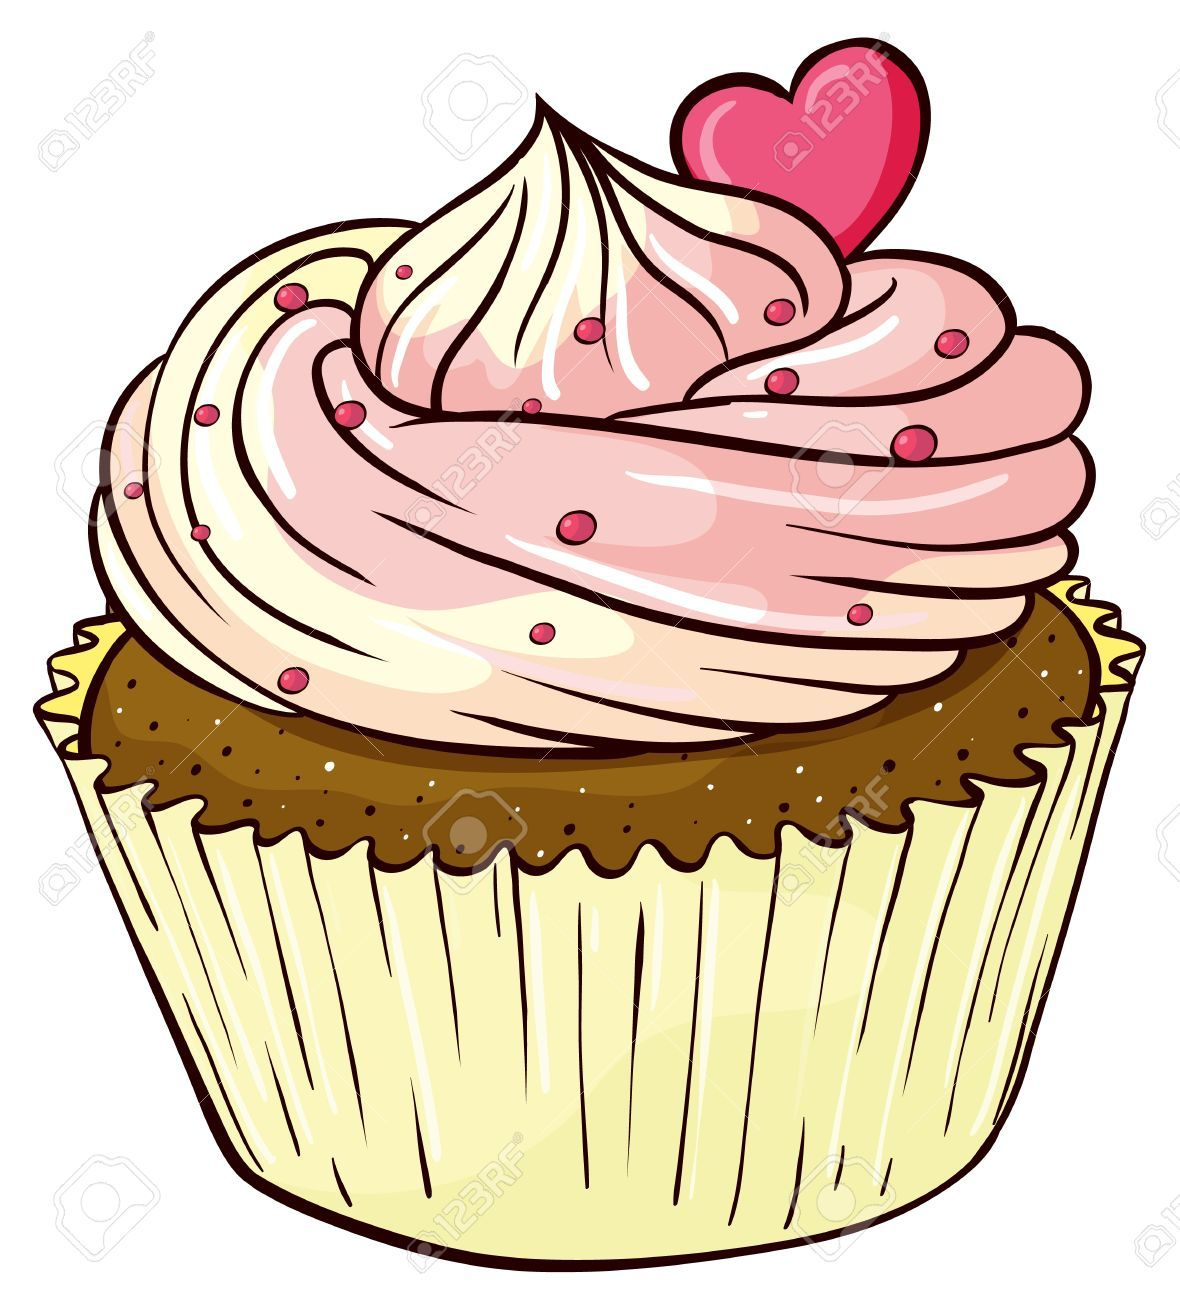 cupcake clipart stock photos images royalty free cupcake clipart  [ 1180 x 1300 Pixel ]